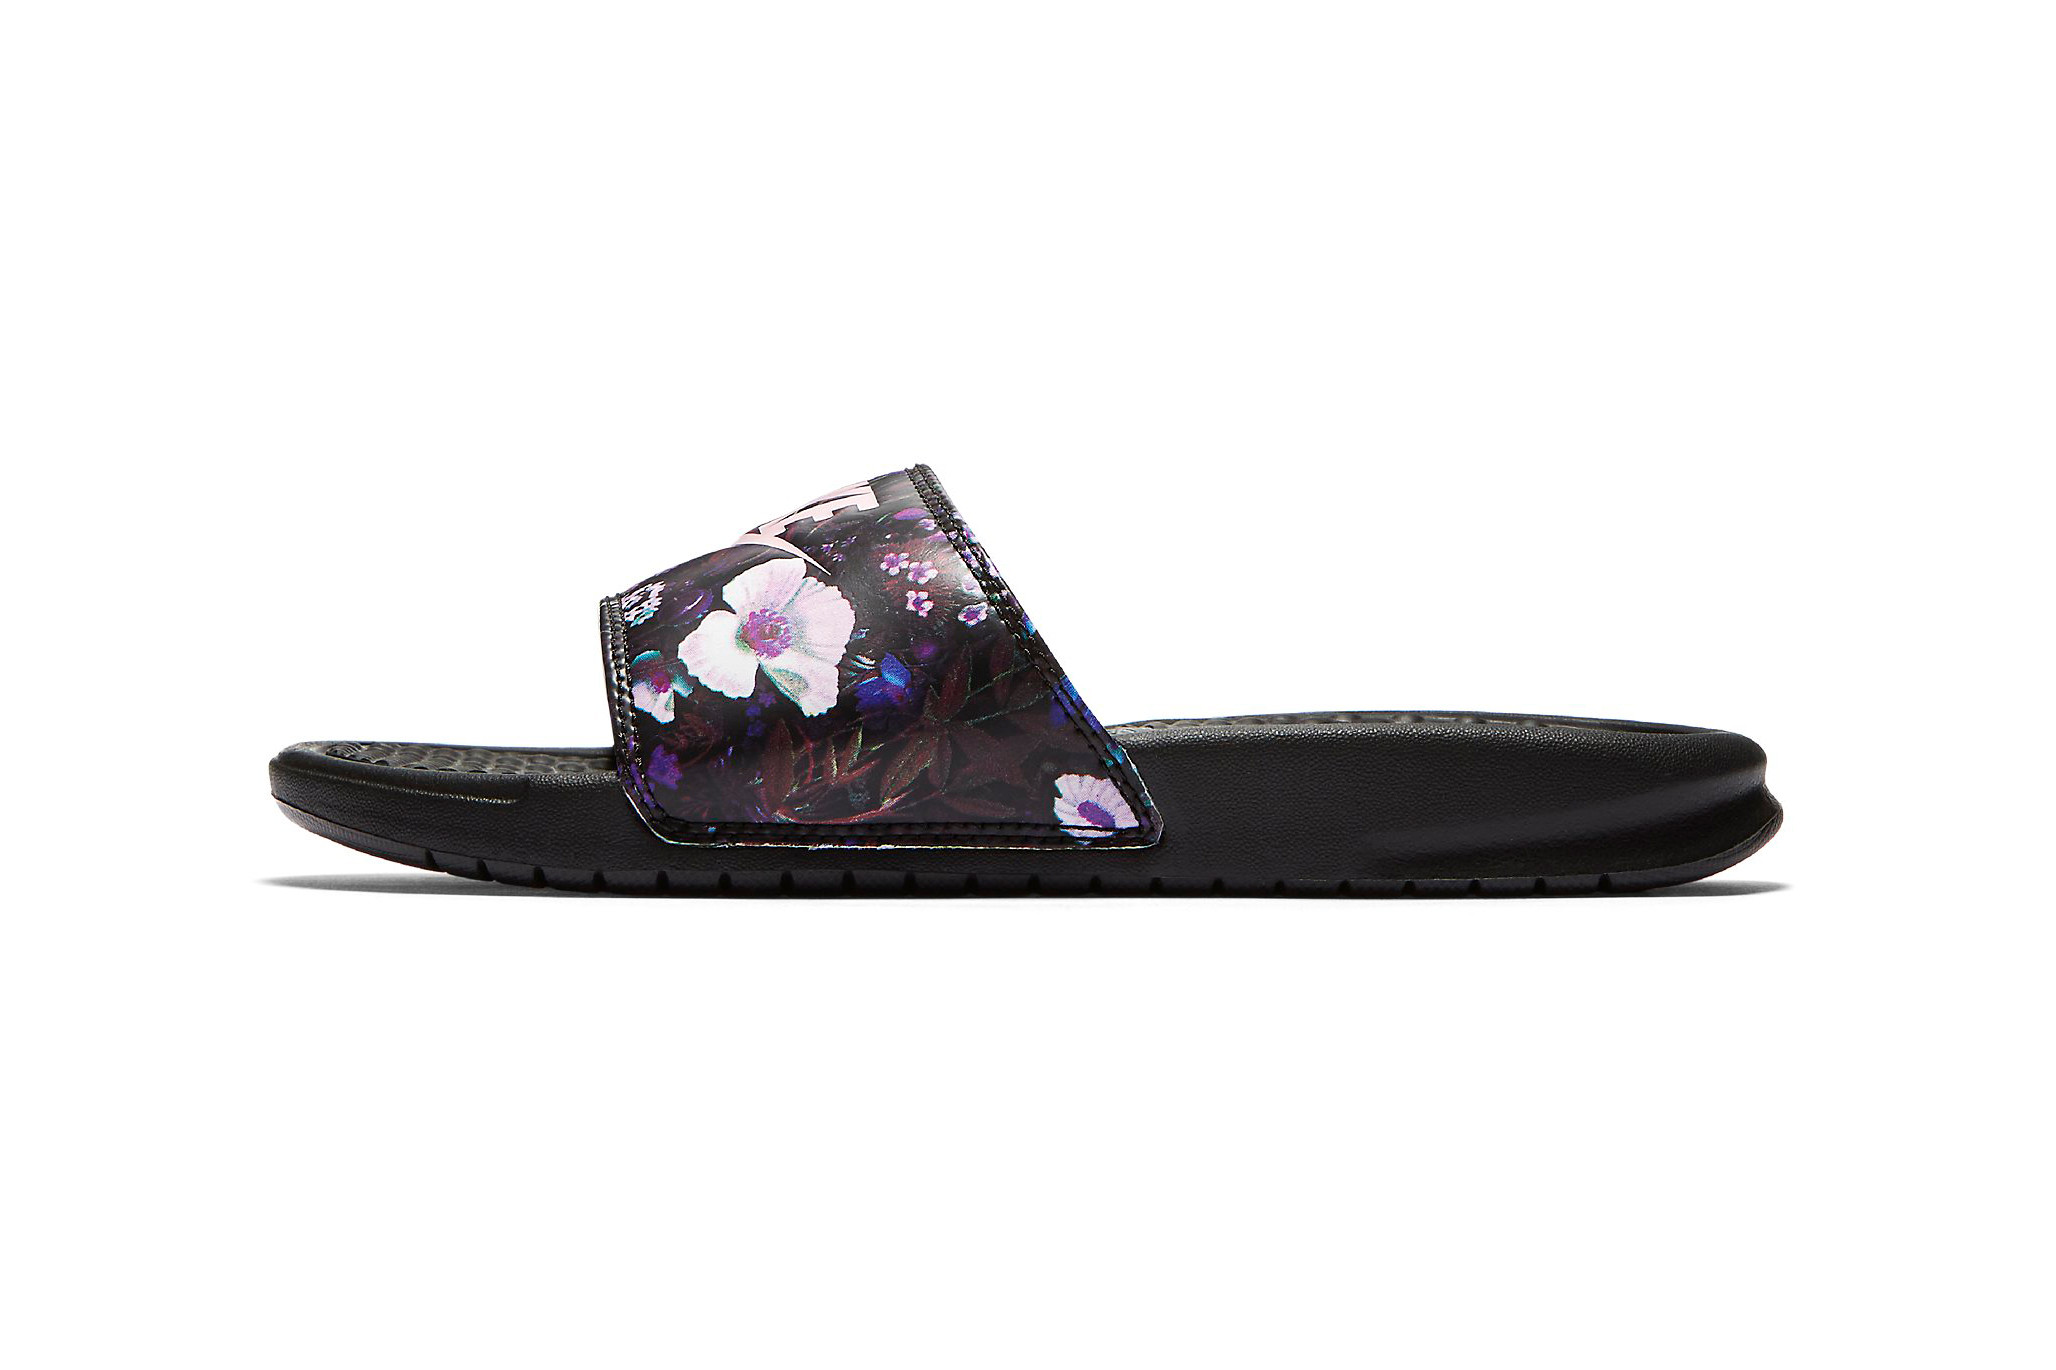 Benassi Slides Are Covered in Flowers